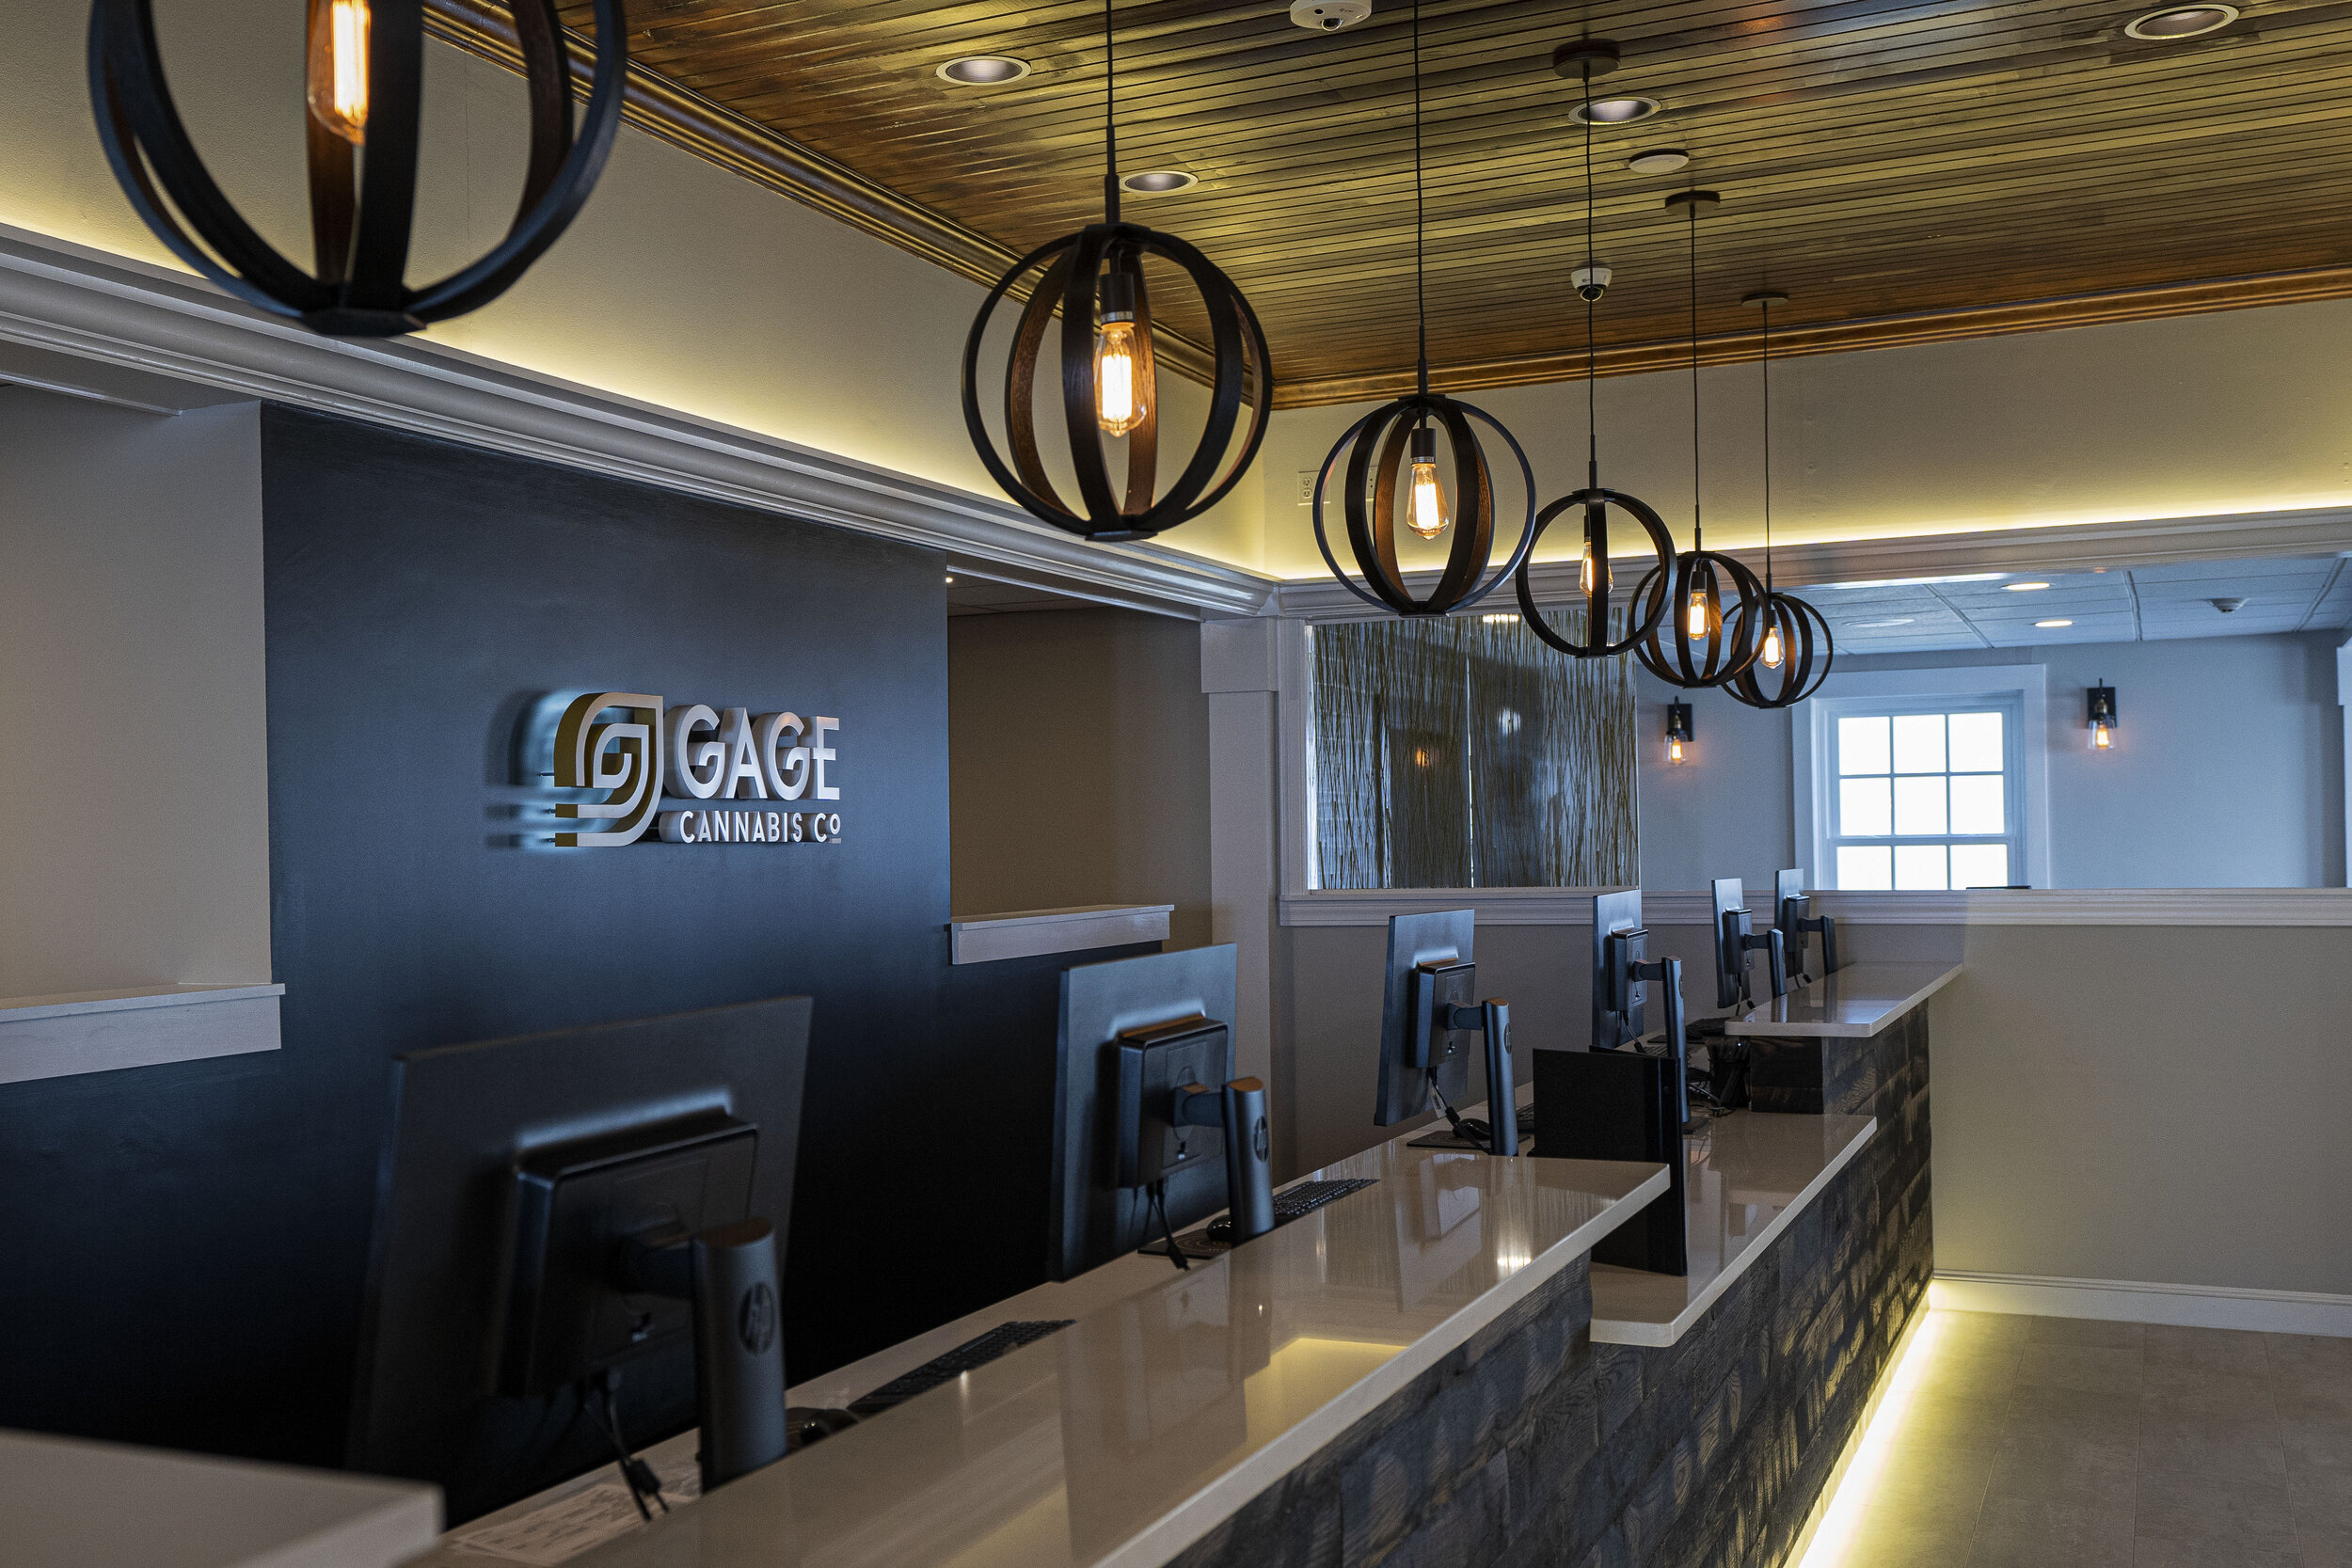 Gage Cannabis Co Interior POS Stations